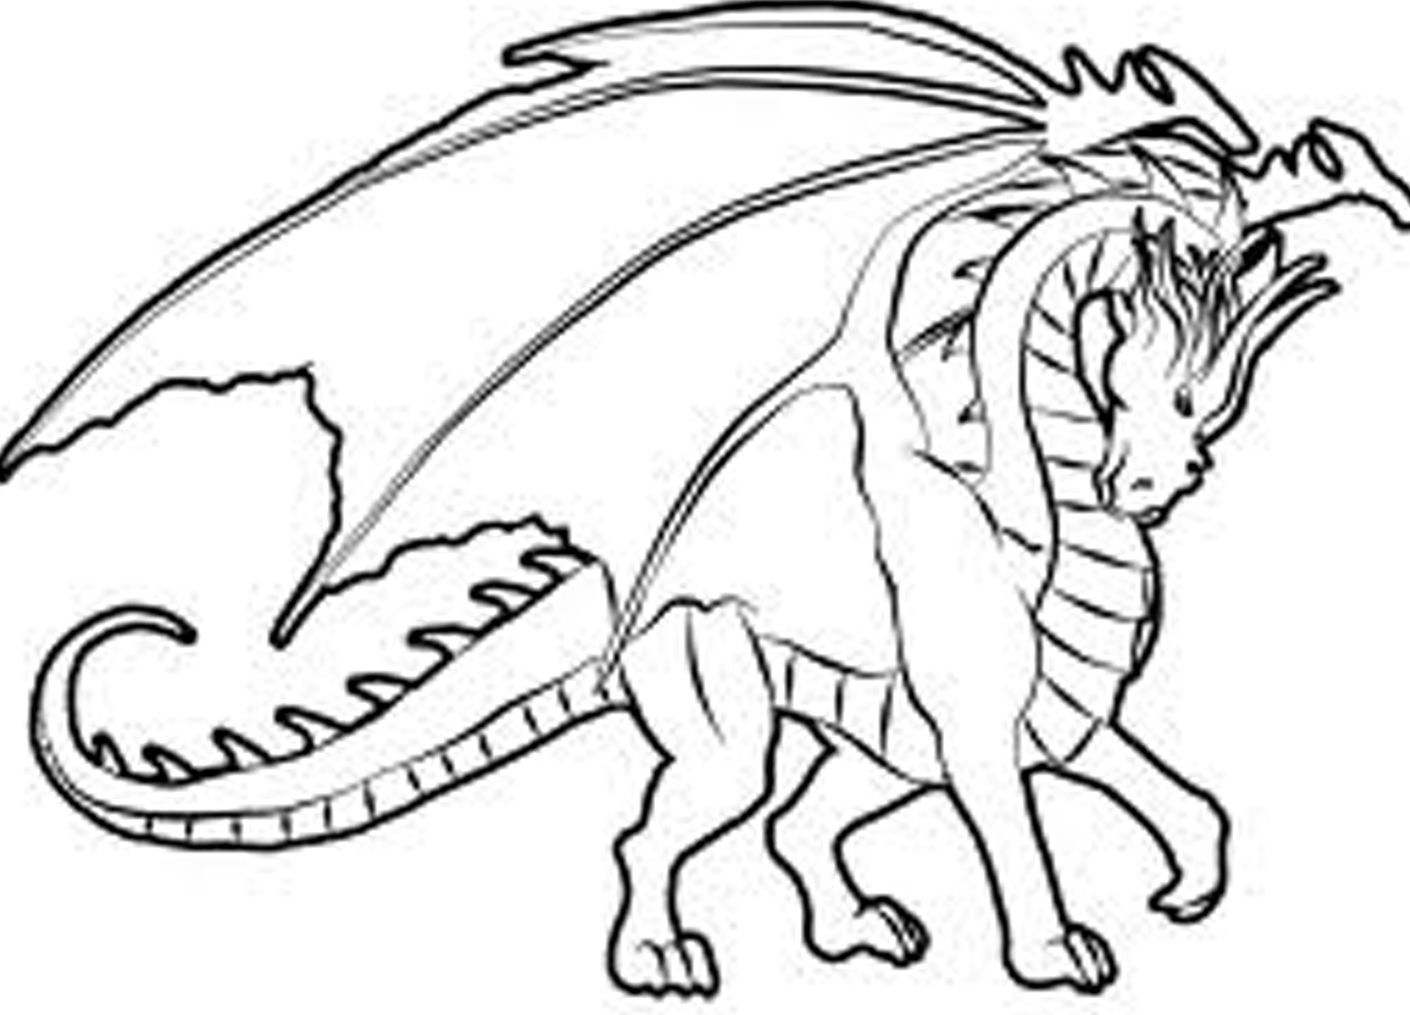 Childrens online colouring book - Hard Coloring Pages Of Dragons